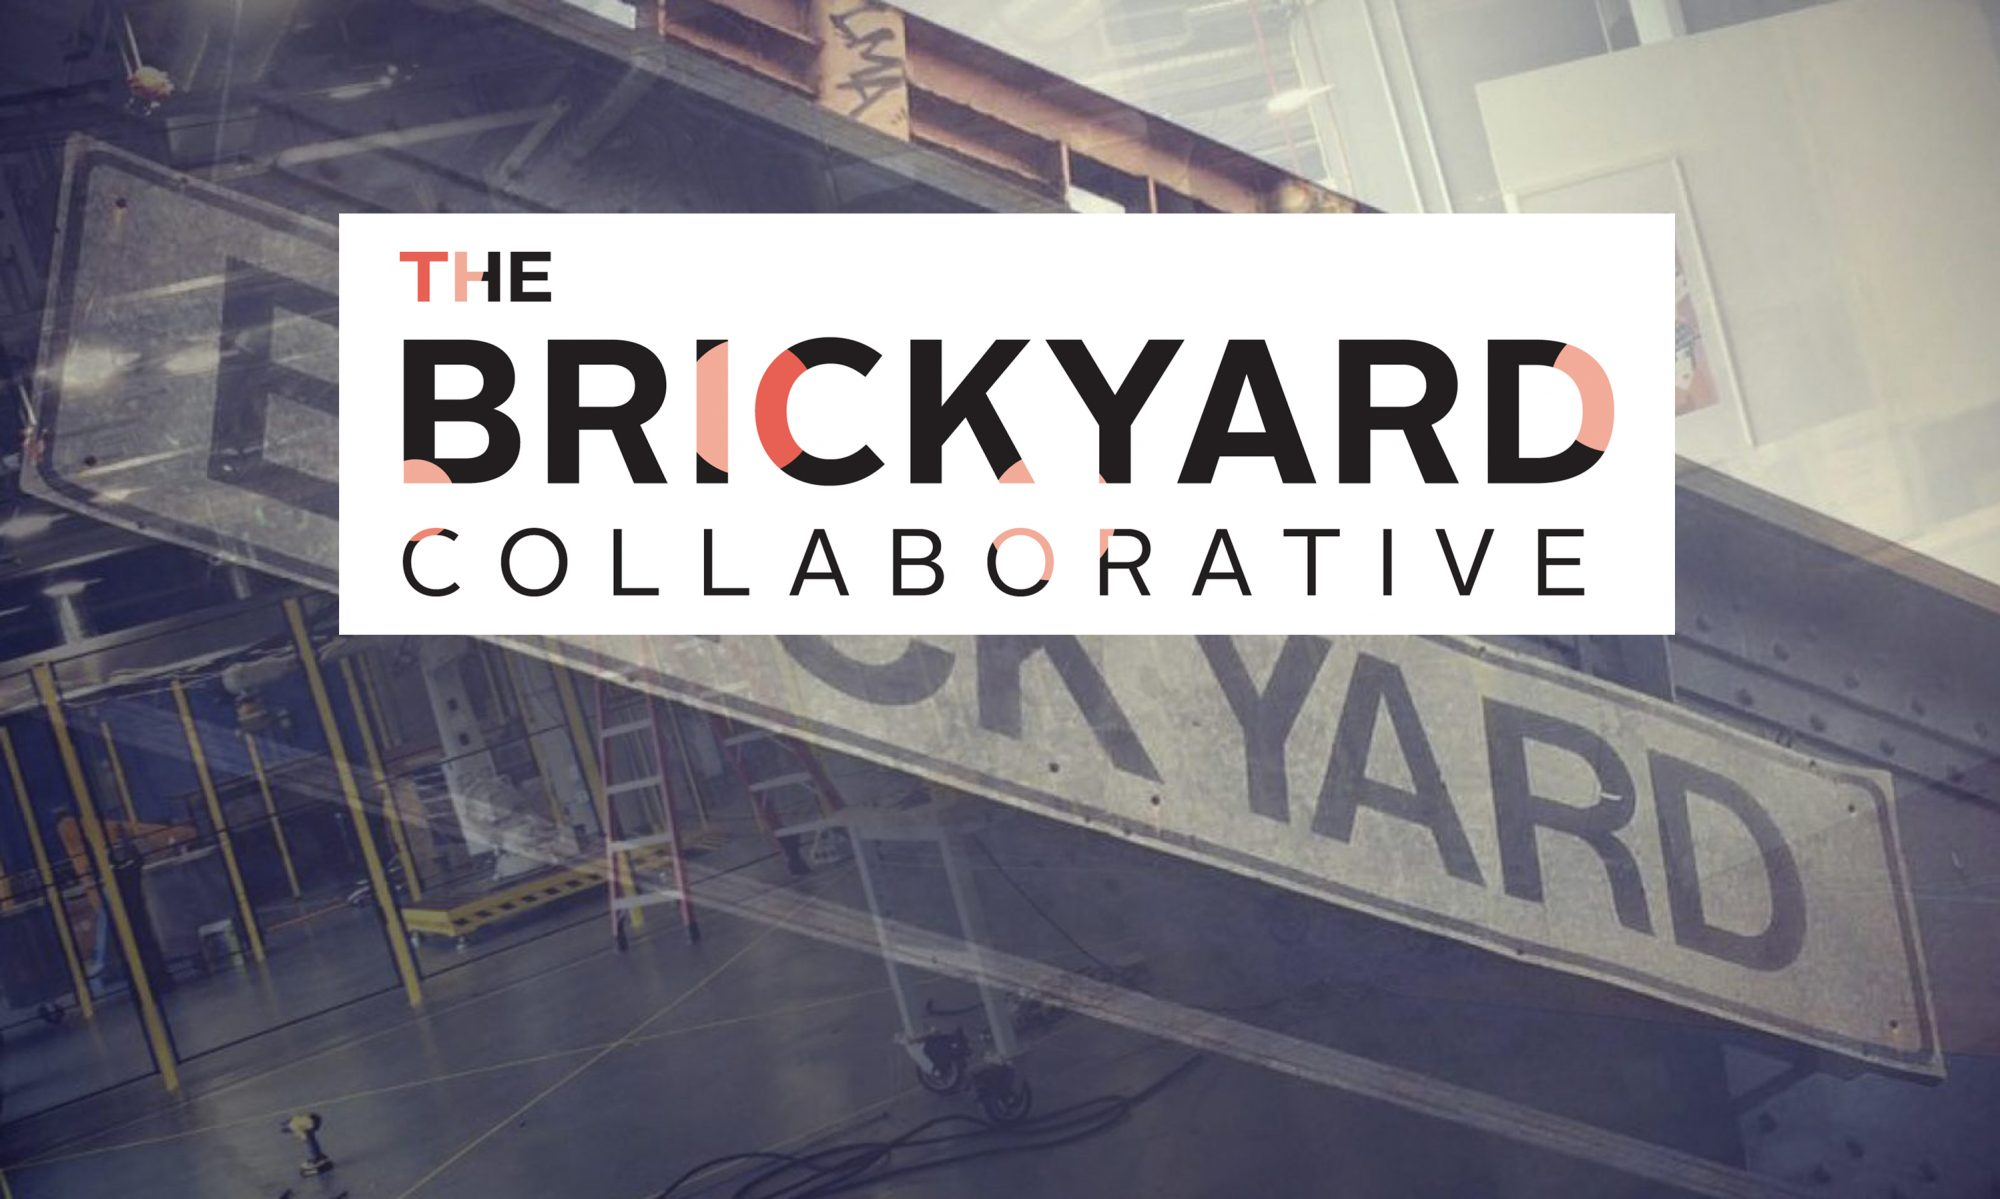 The Brickyard Collaborative